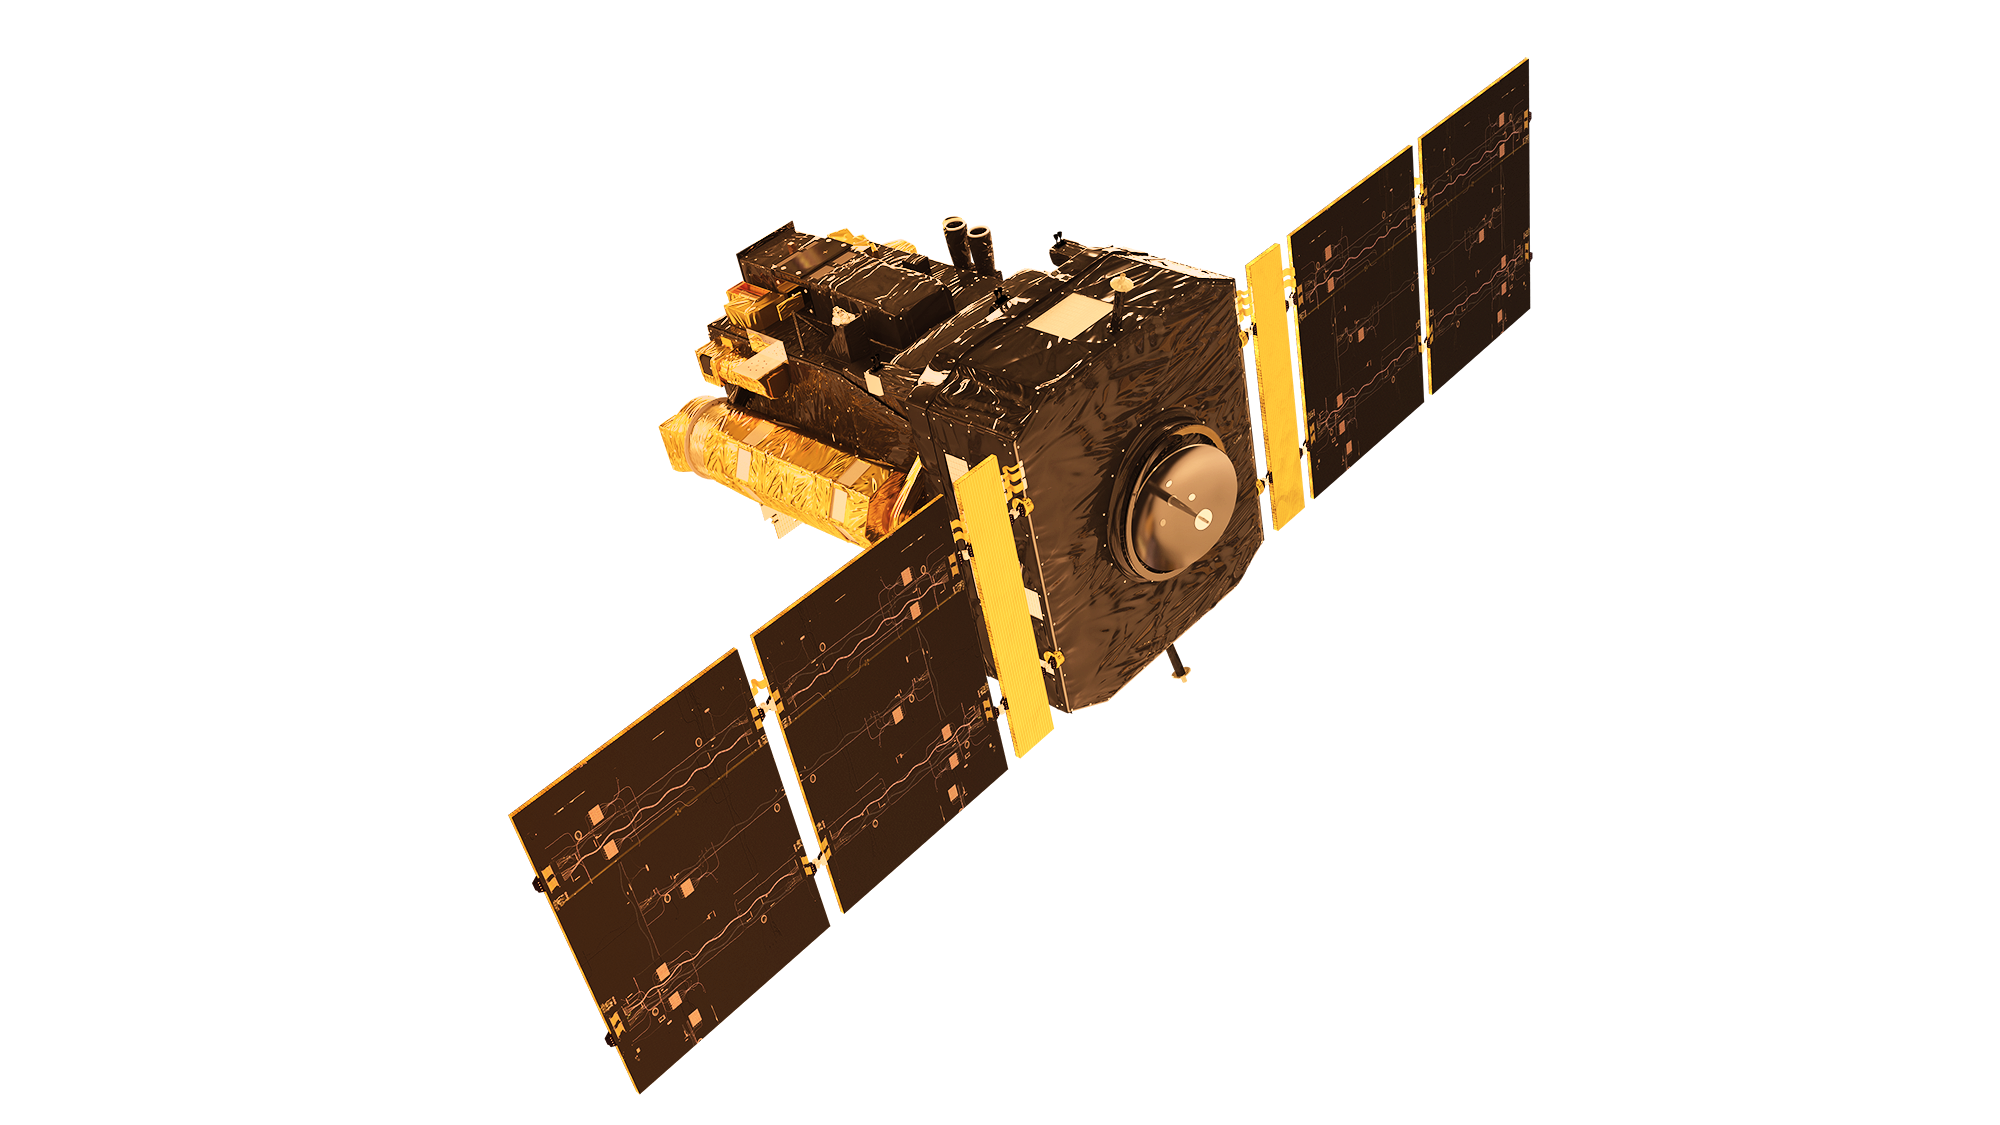 Space probe png